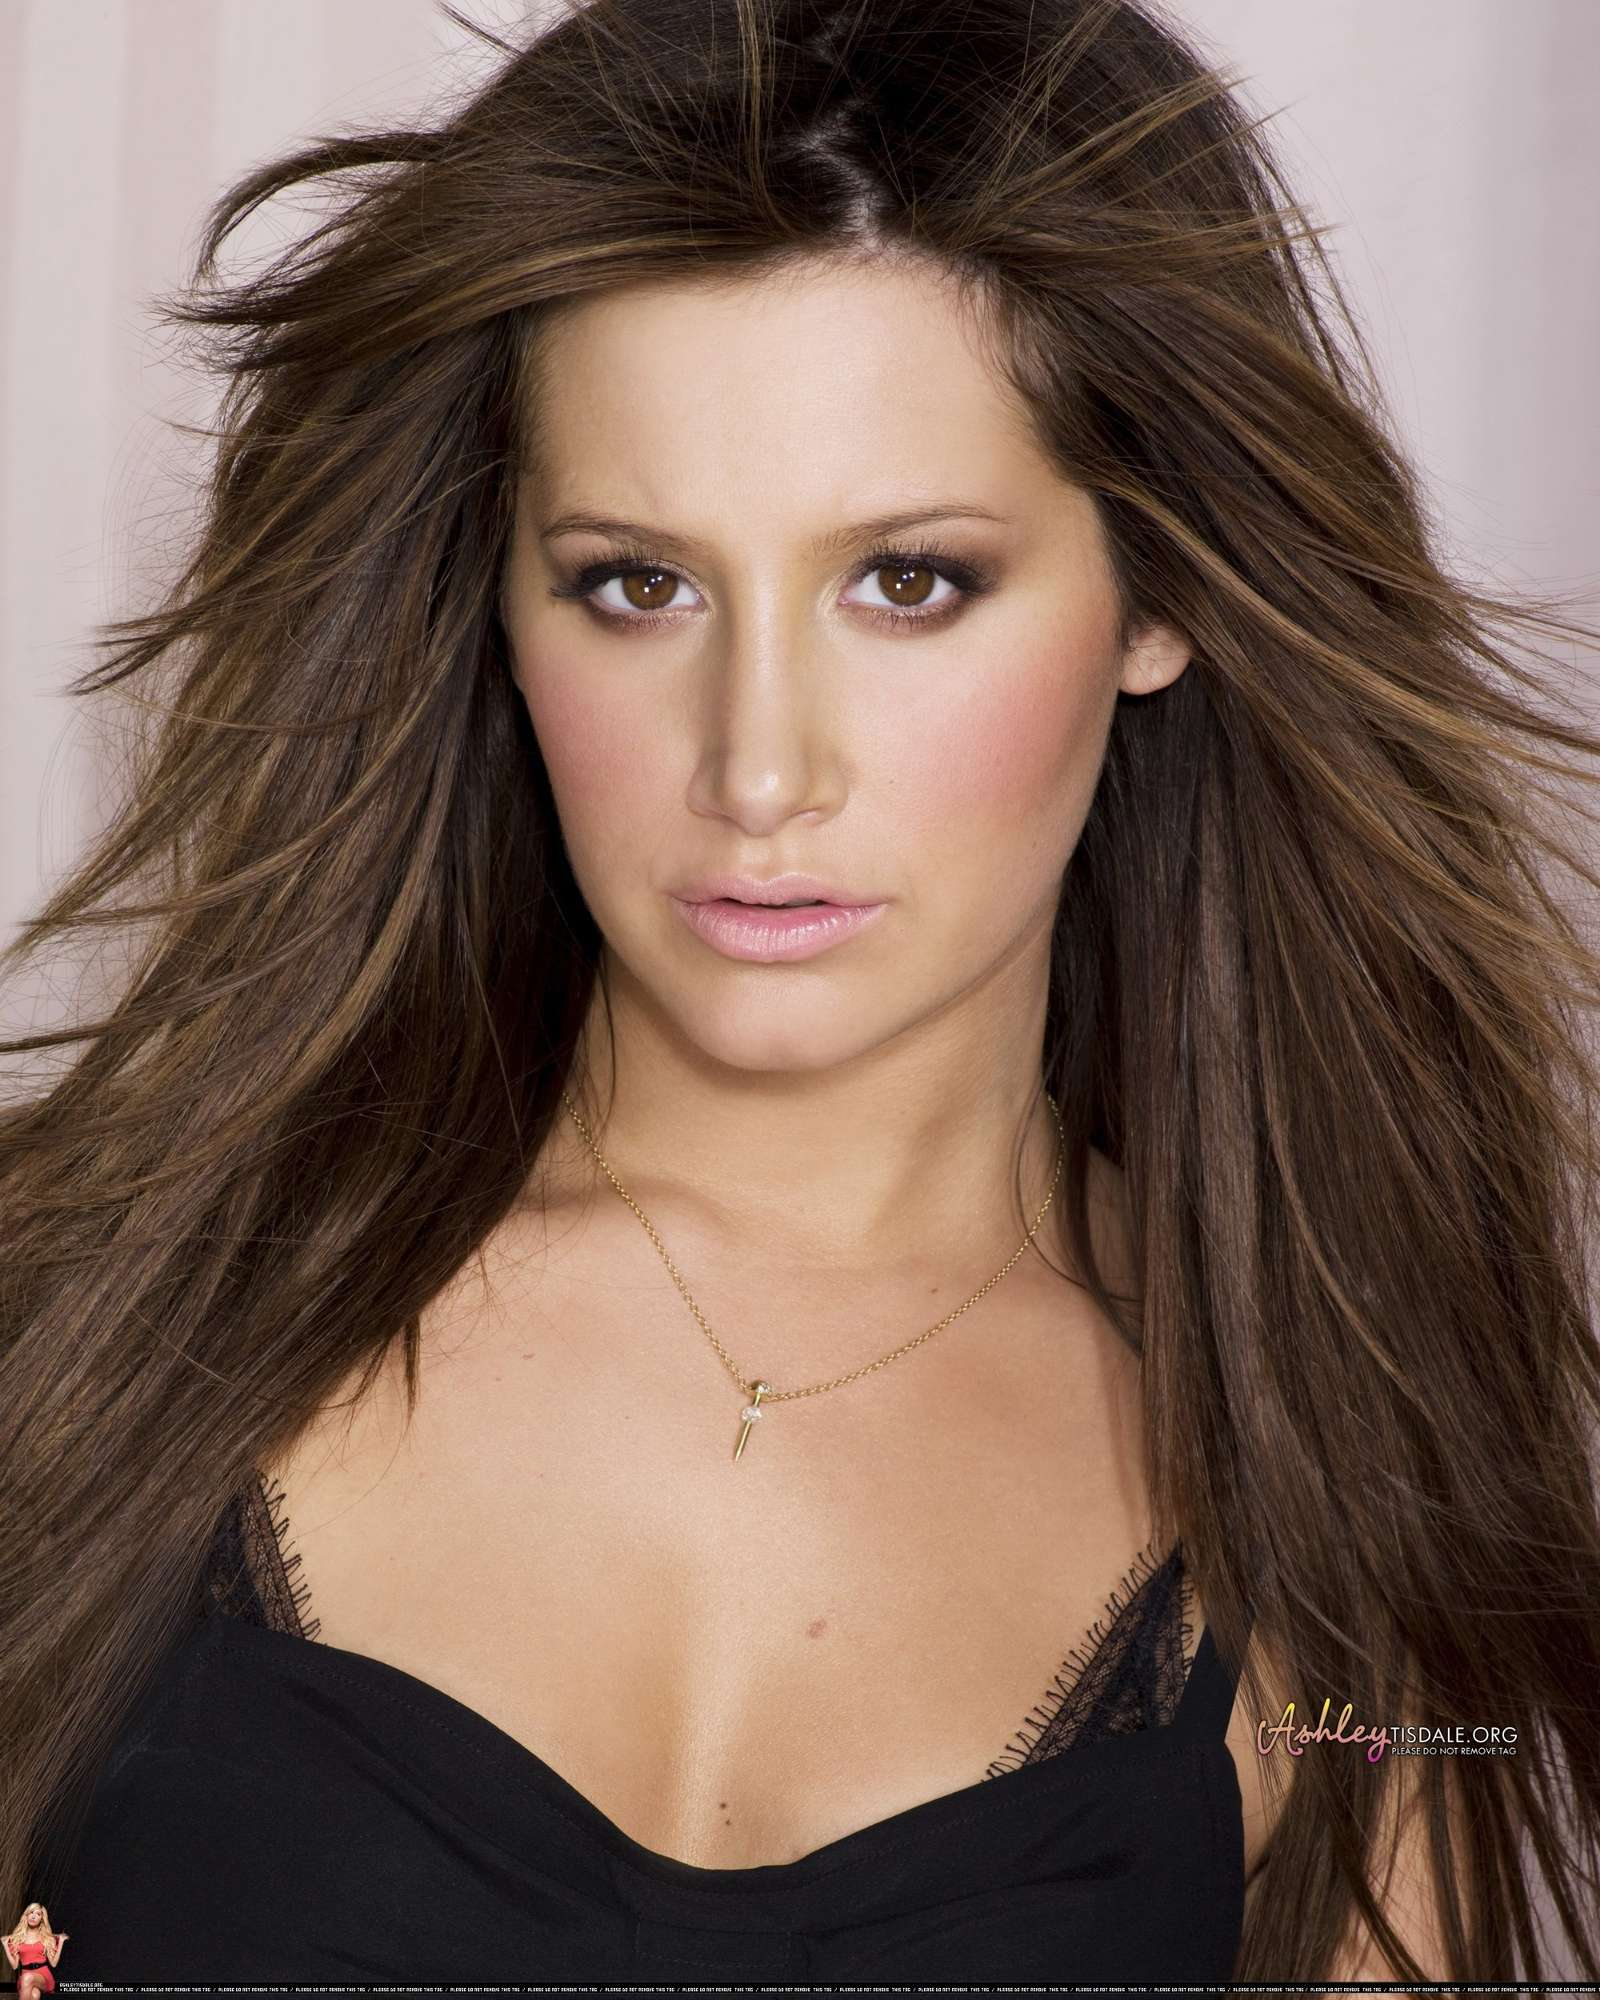 Ashley Tisdale Photoshoot 2011